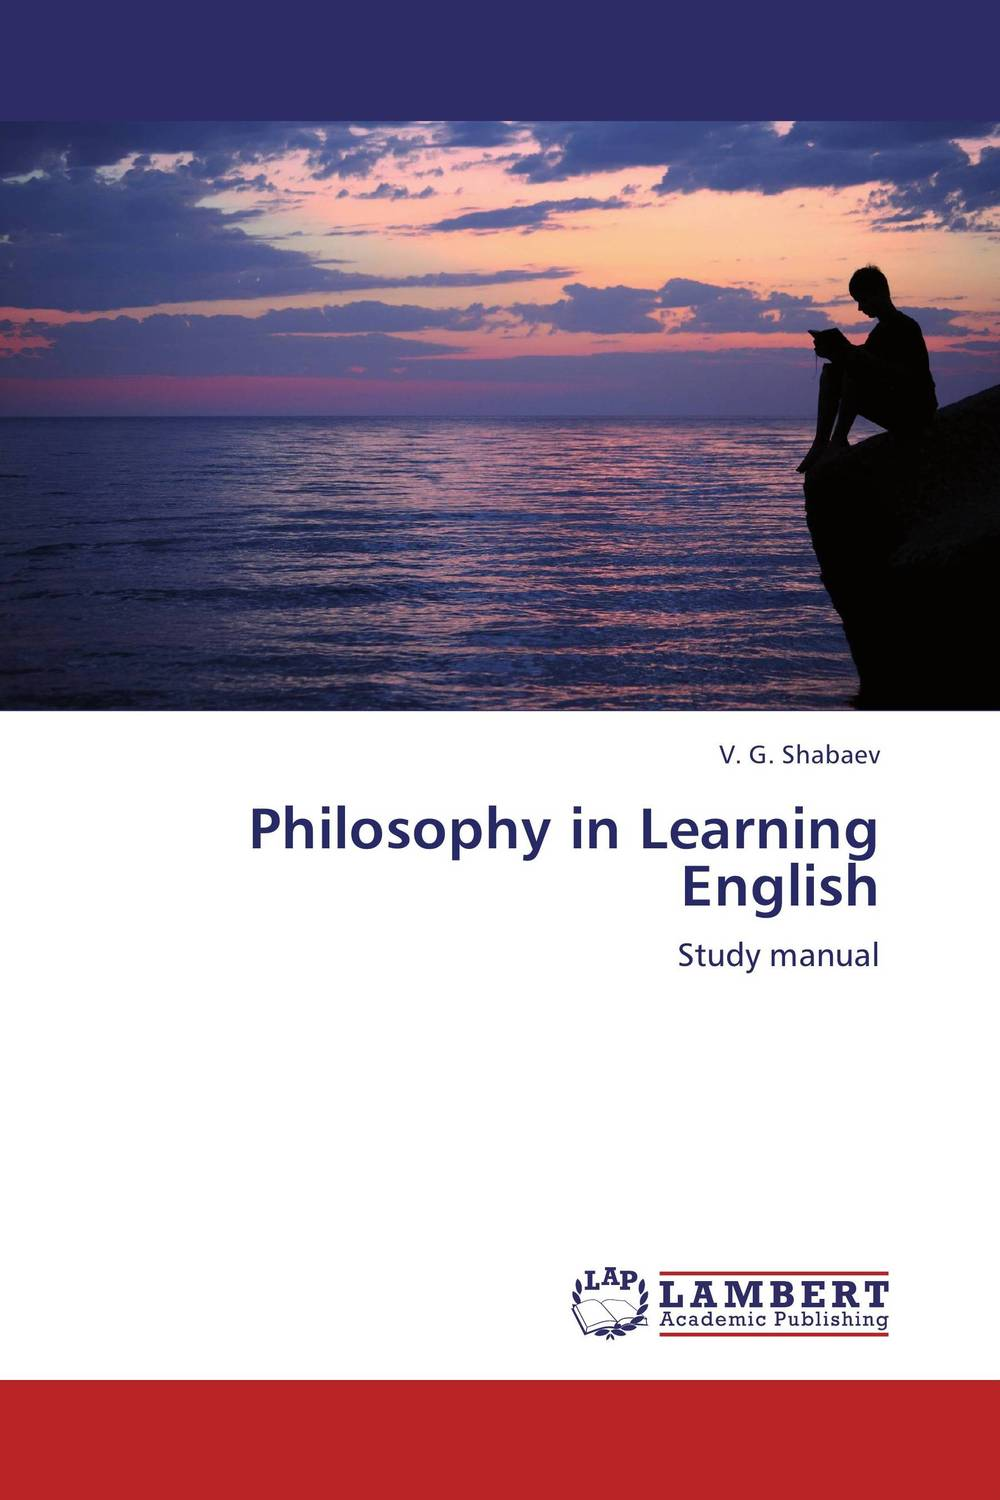 Philosophy in Learning English the role of absurdity within english humour